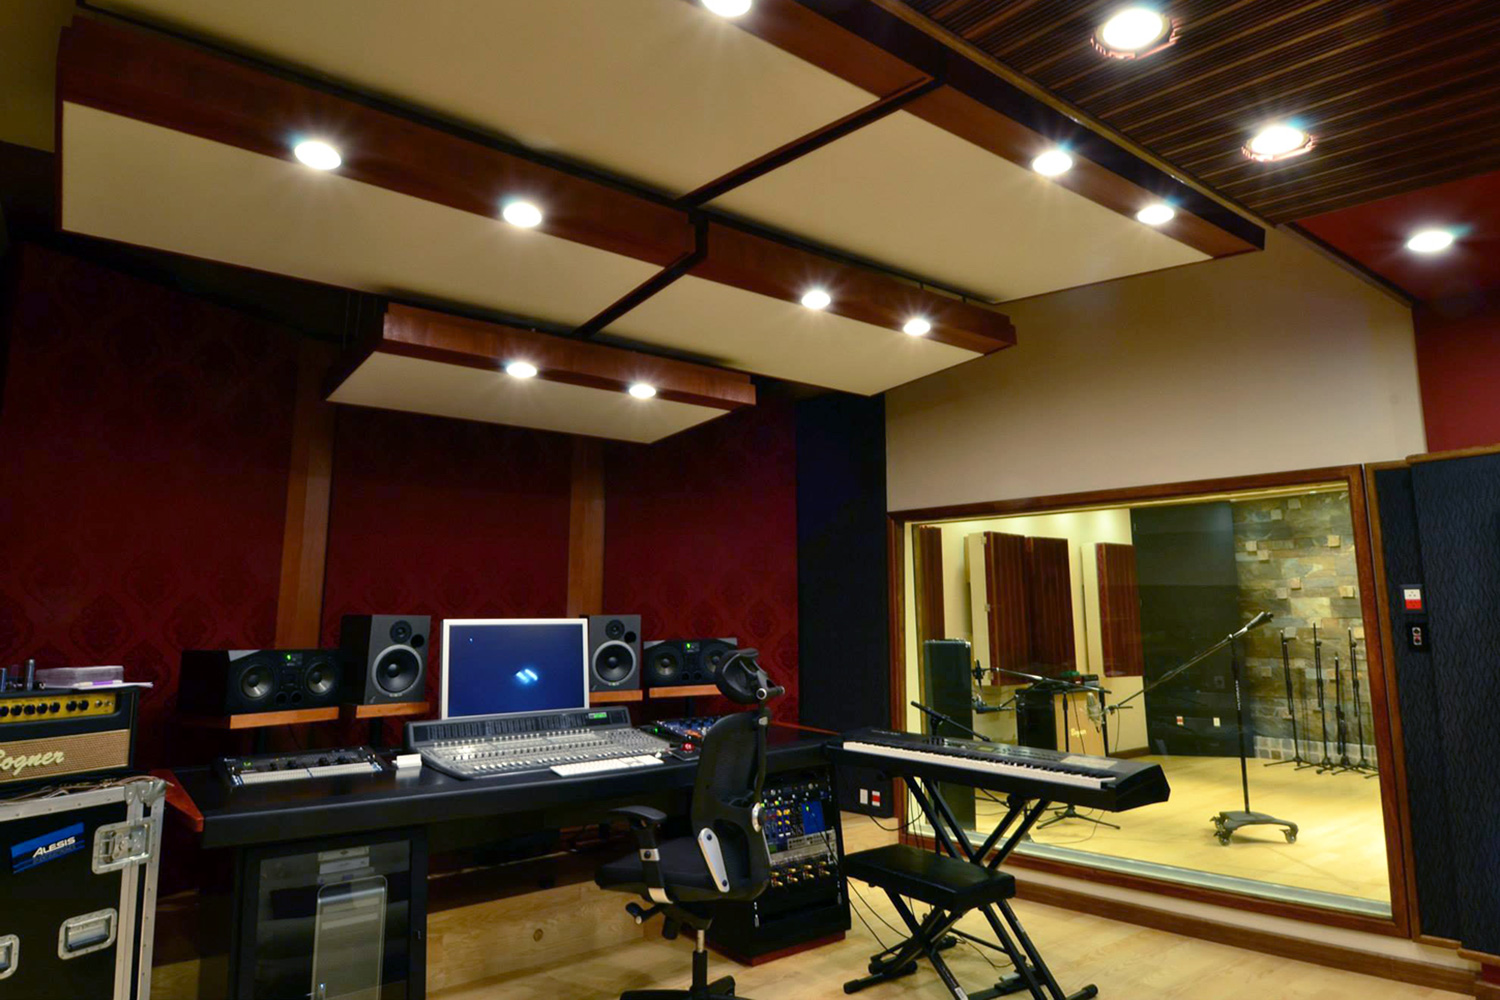 Jose Gentile home recording studio designed by WSDG in Cordoba, Argentina. Control Room front.